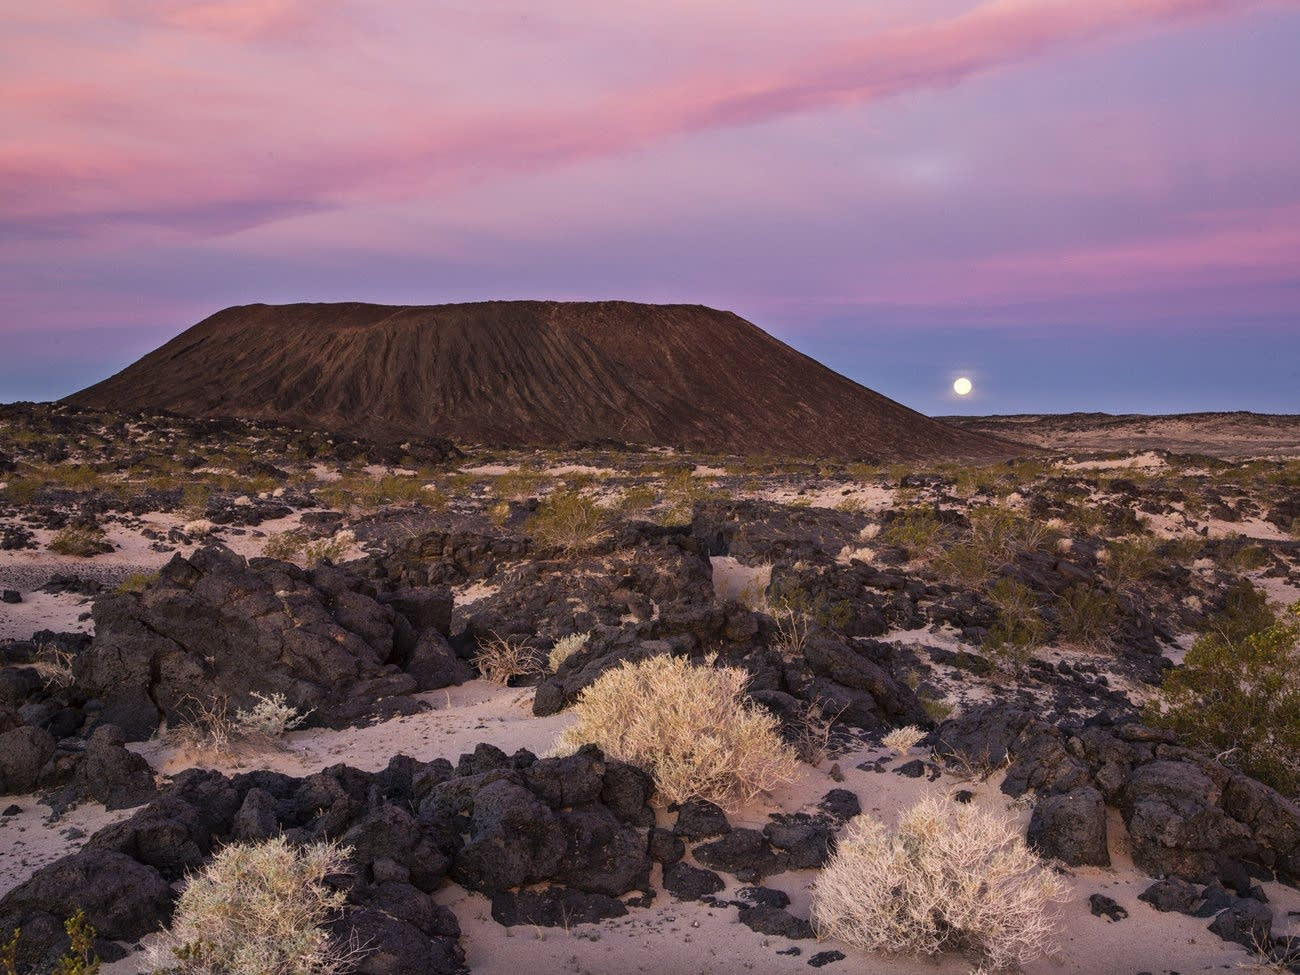 Mojave Trails National Monument